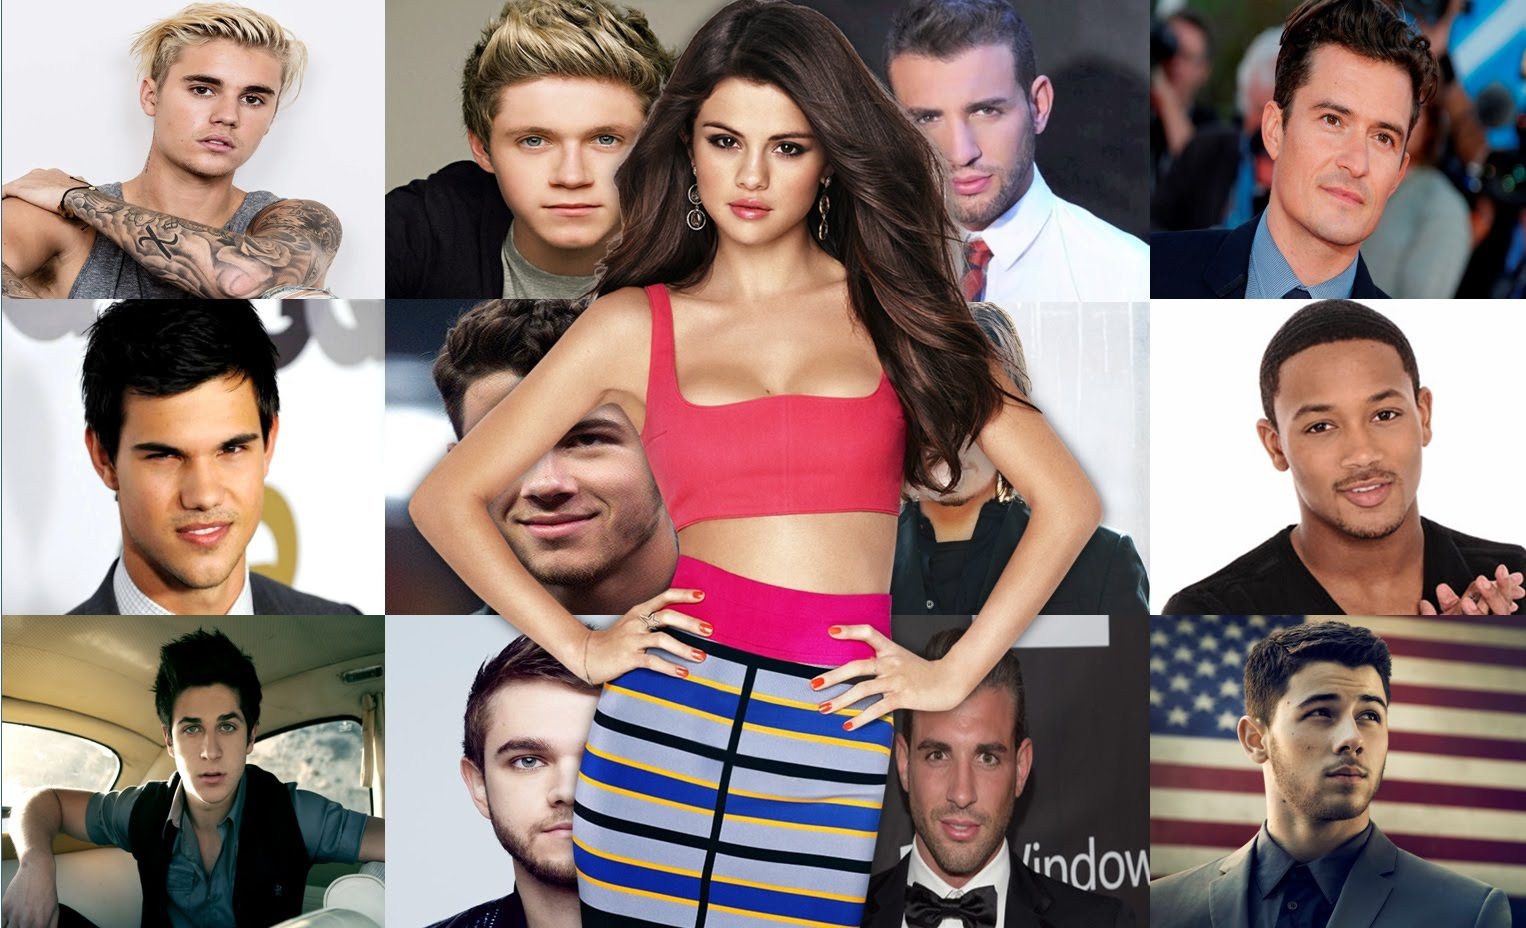 Selena Gomez and her suspected boyfriends